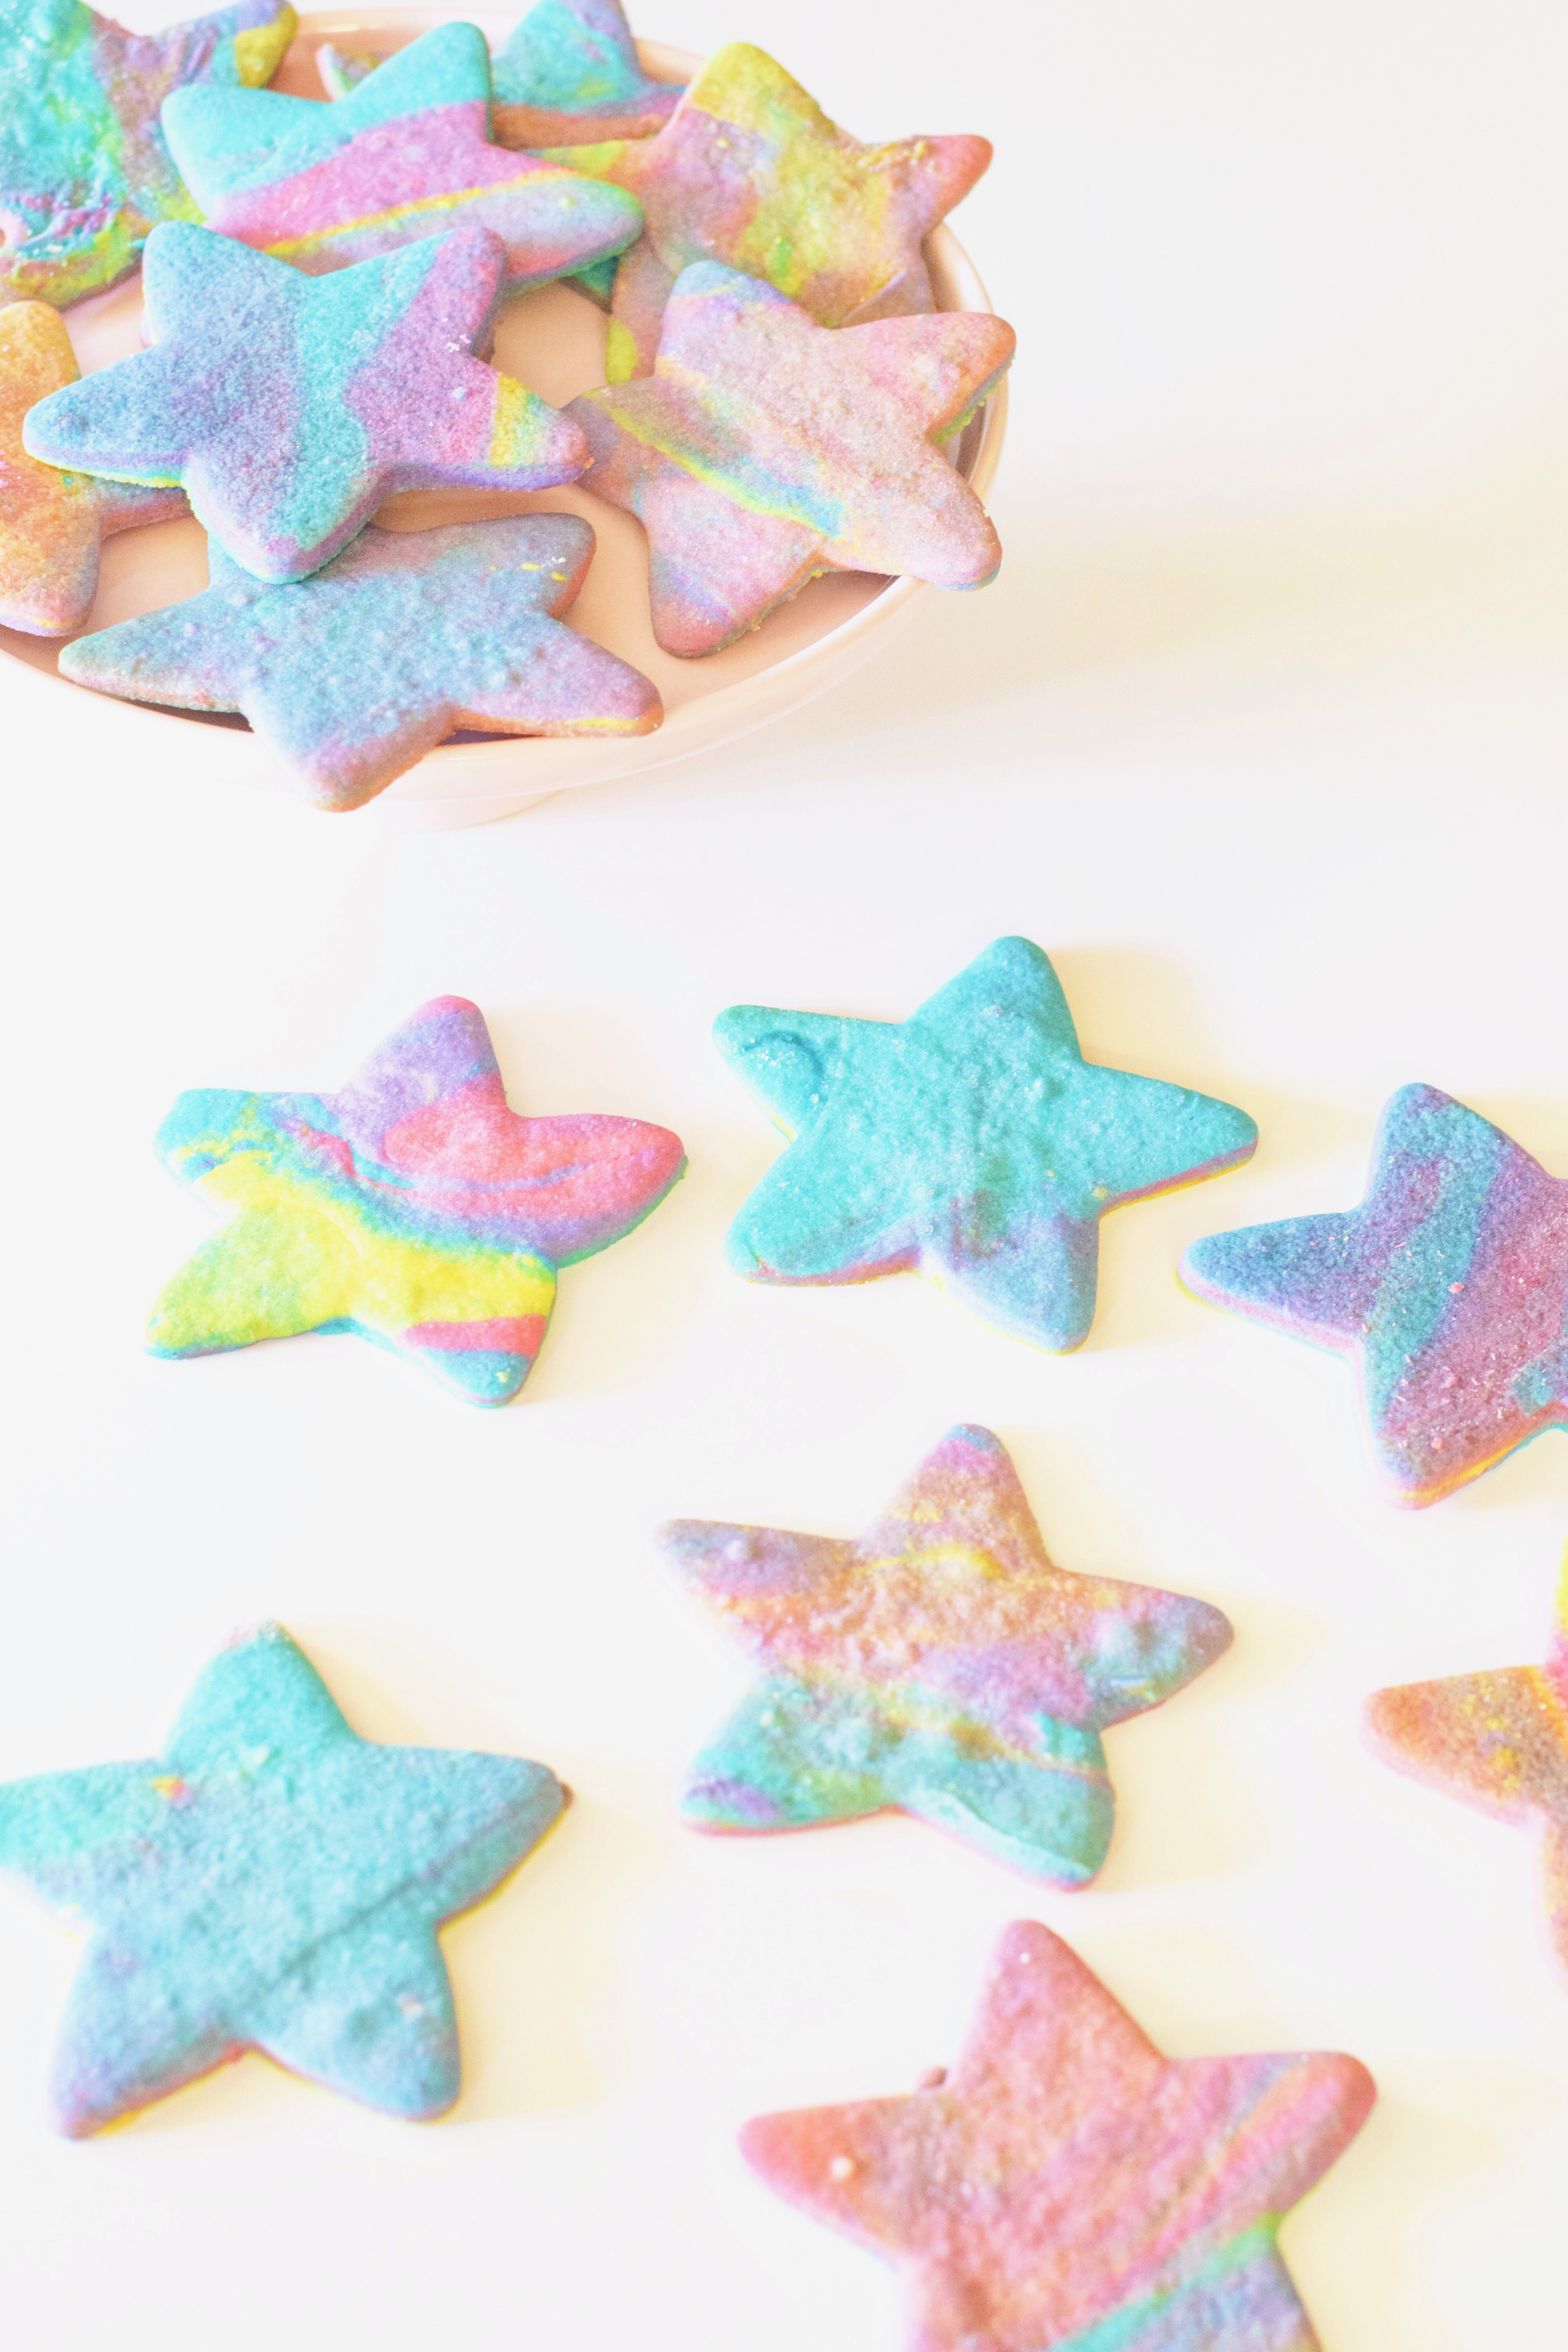 Northern Lights Sugar Cookies - #glutenfree #sugarcookie #recipe #easydessert #northernlights